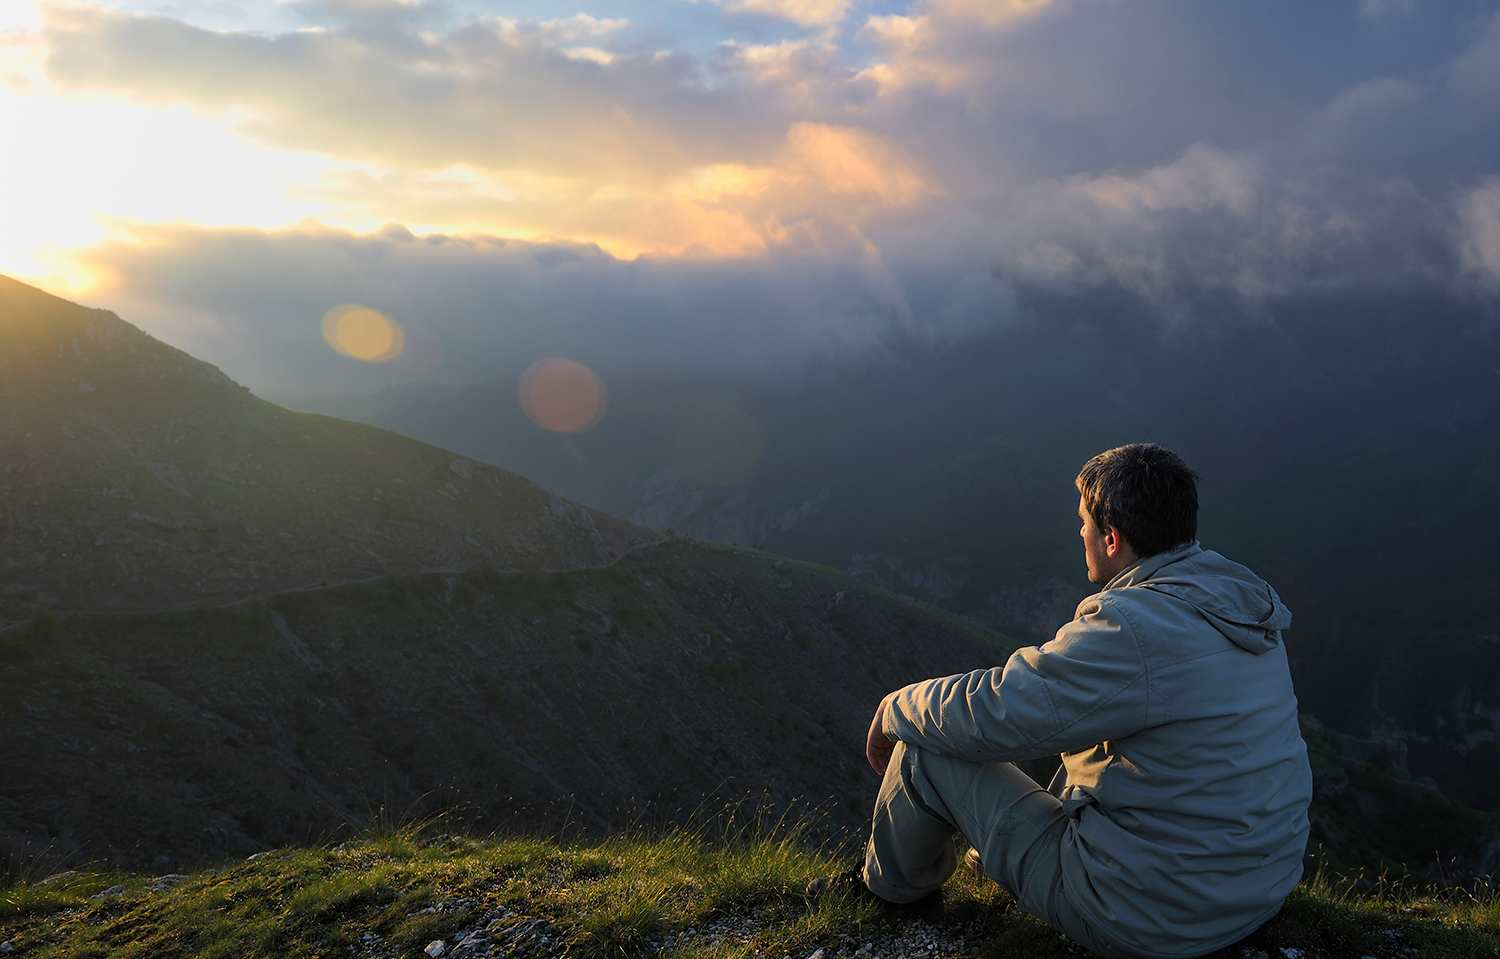 Man sitting on hillside looking at sunrise and vista